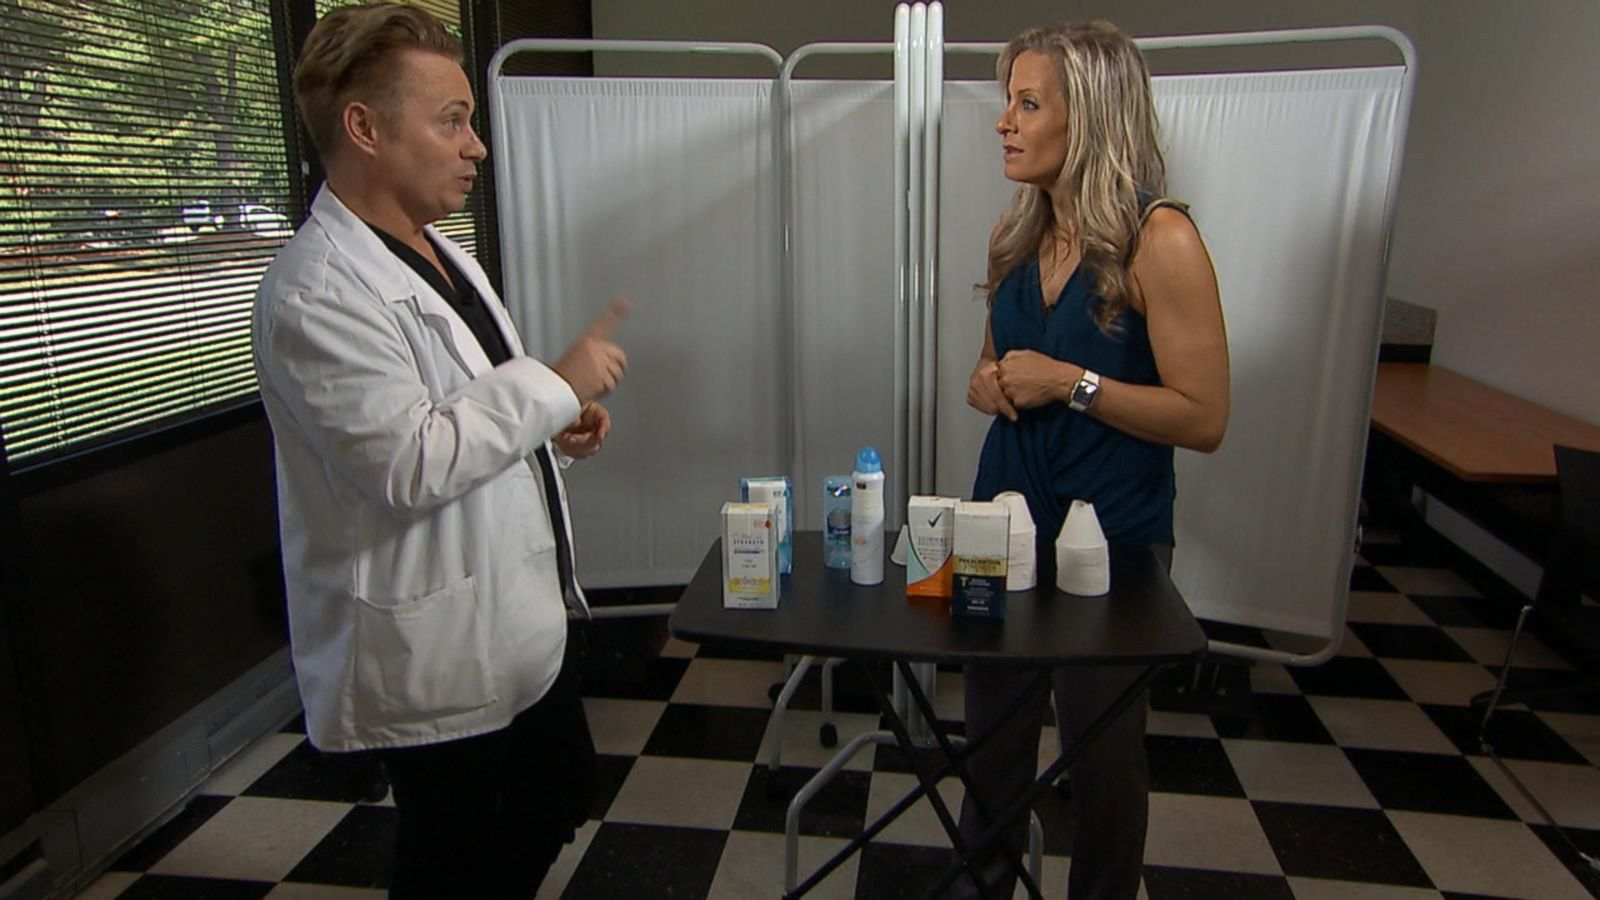 VIDEO: Splurge or Save? Comparing Low-Cost and Designer Deodorants